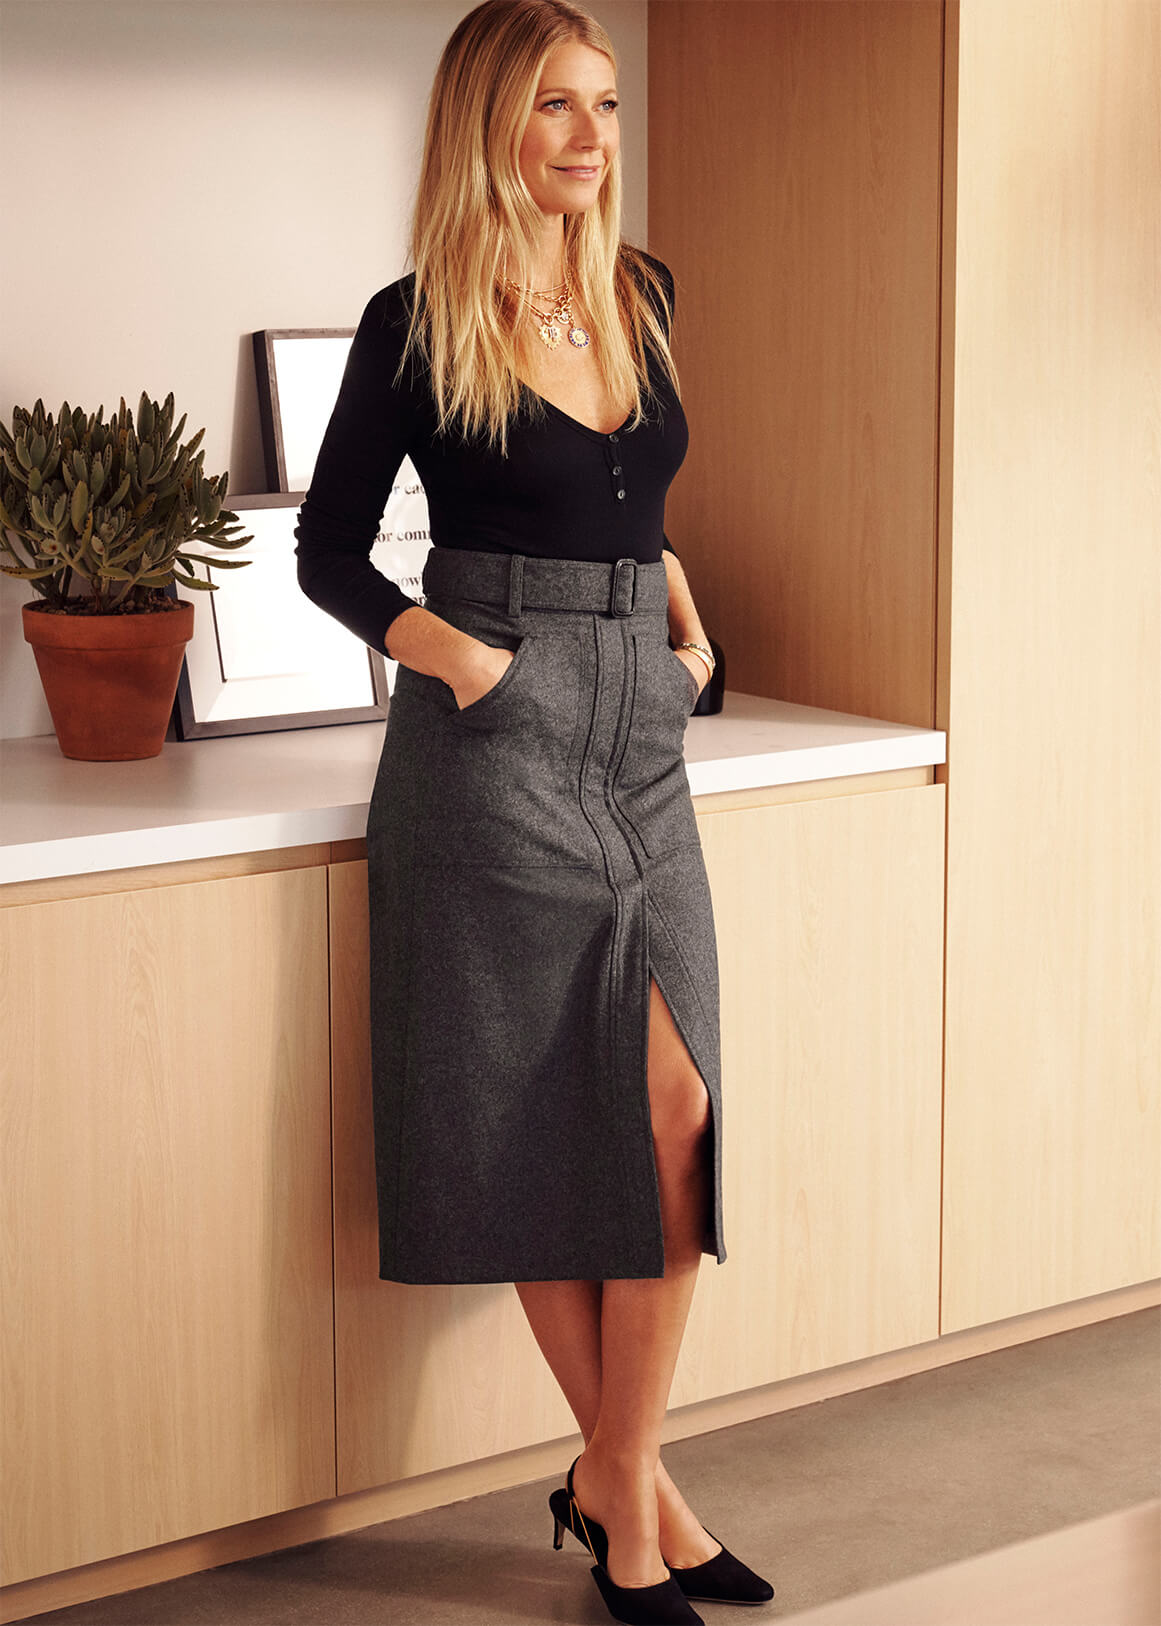 Annika Long-Sleeve Henley Bodysuit and Danielson Midlength Skirt